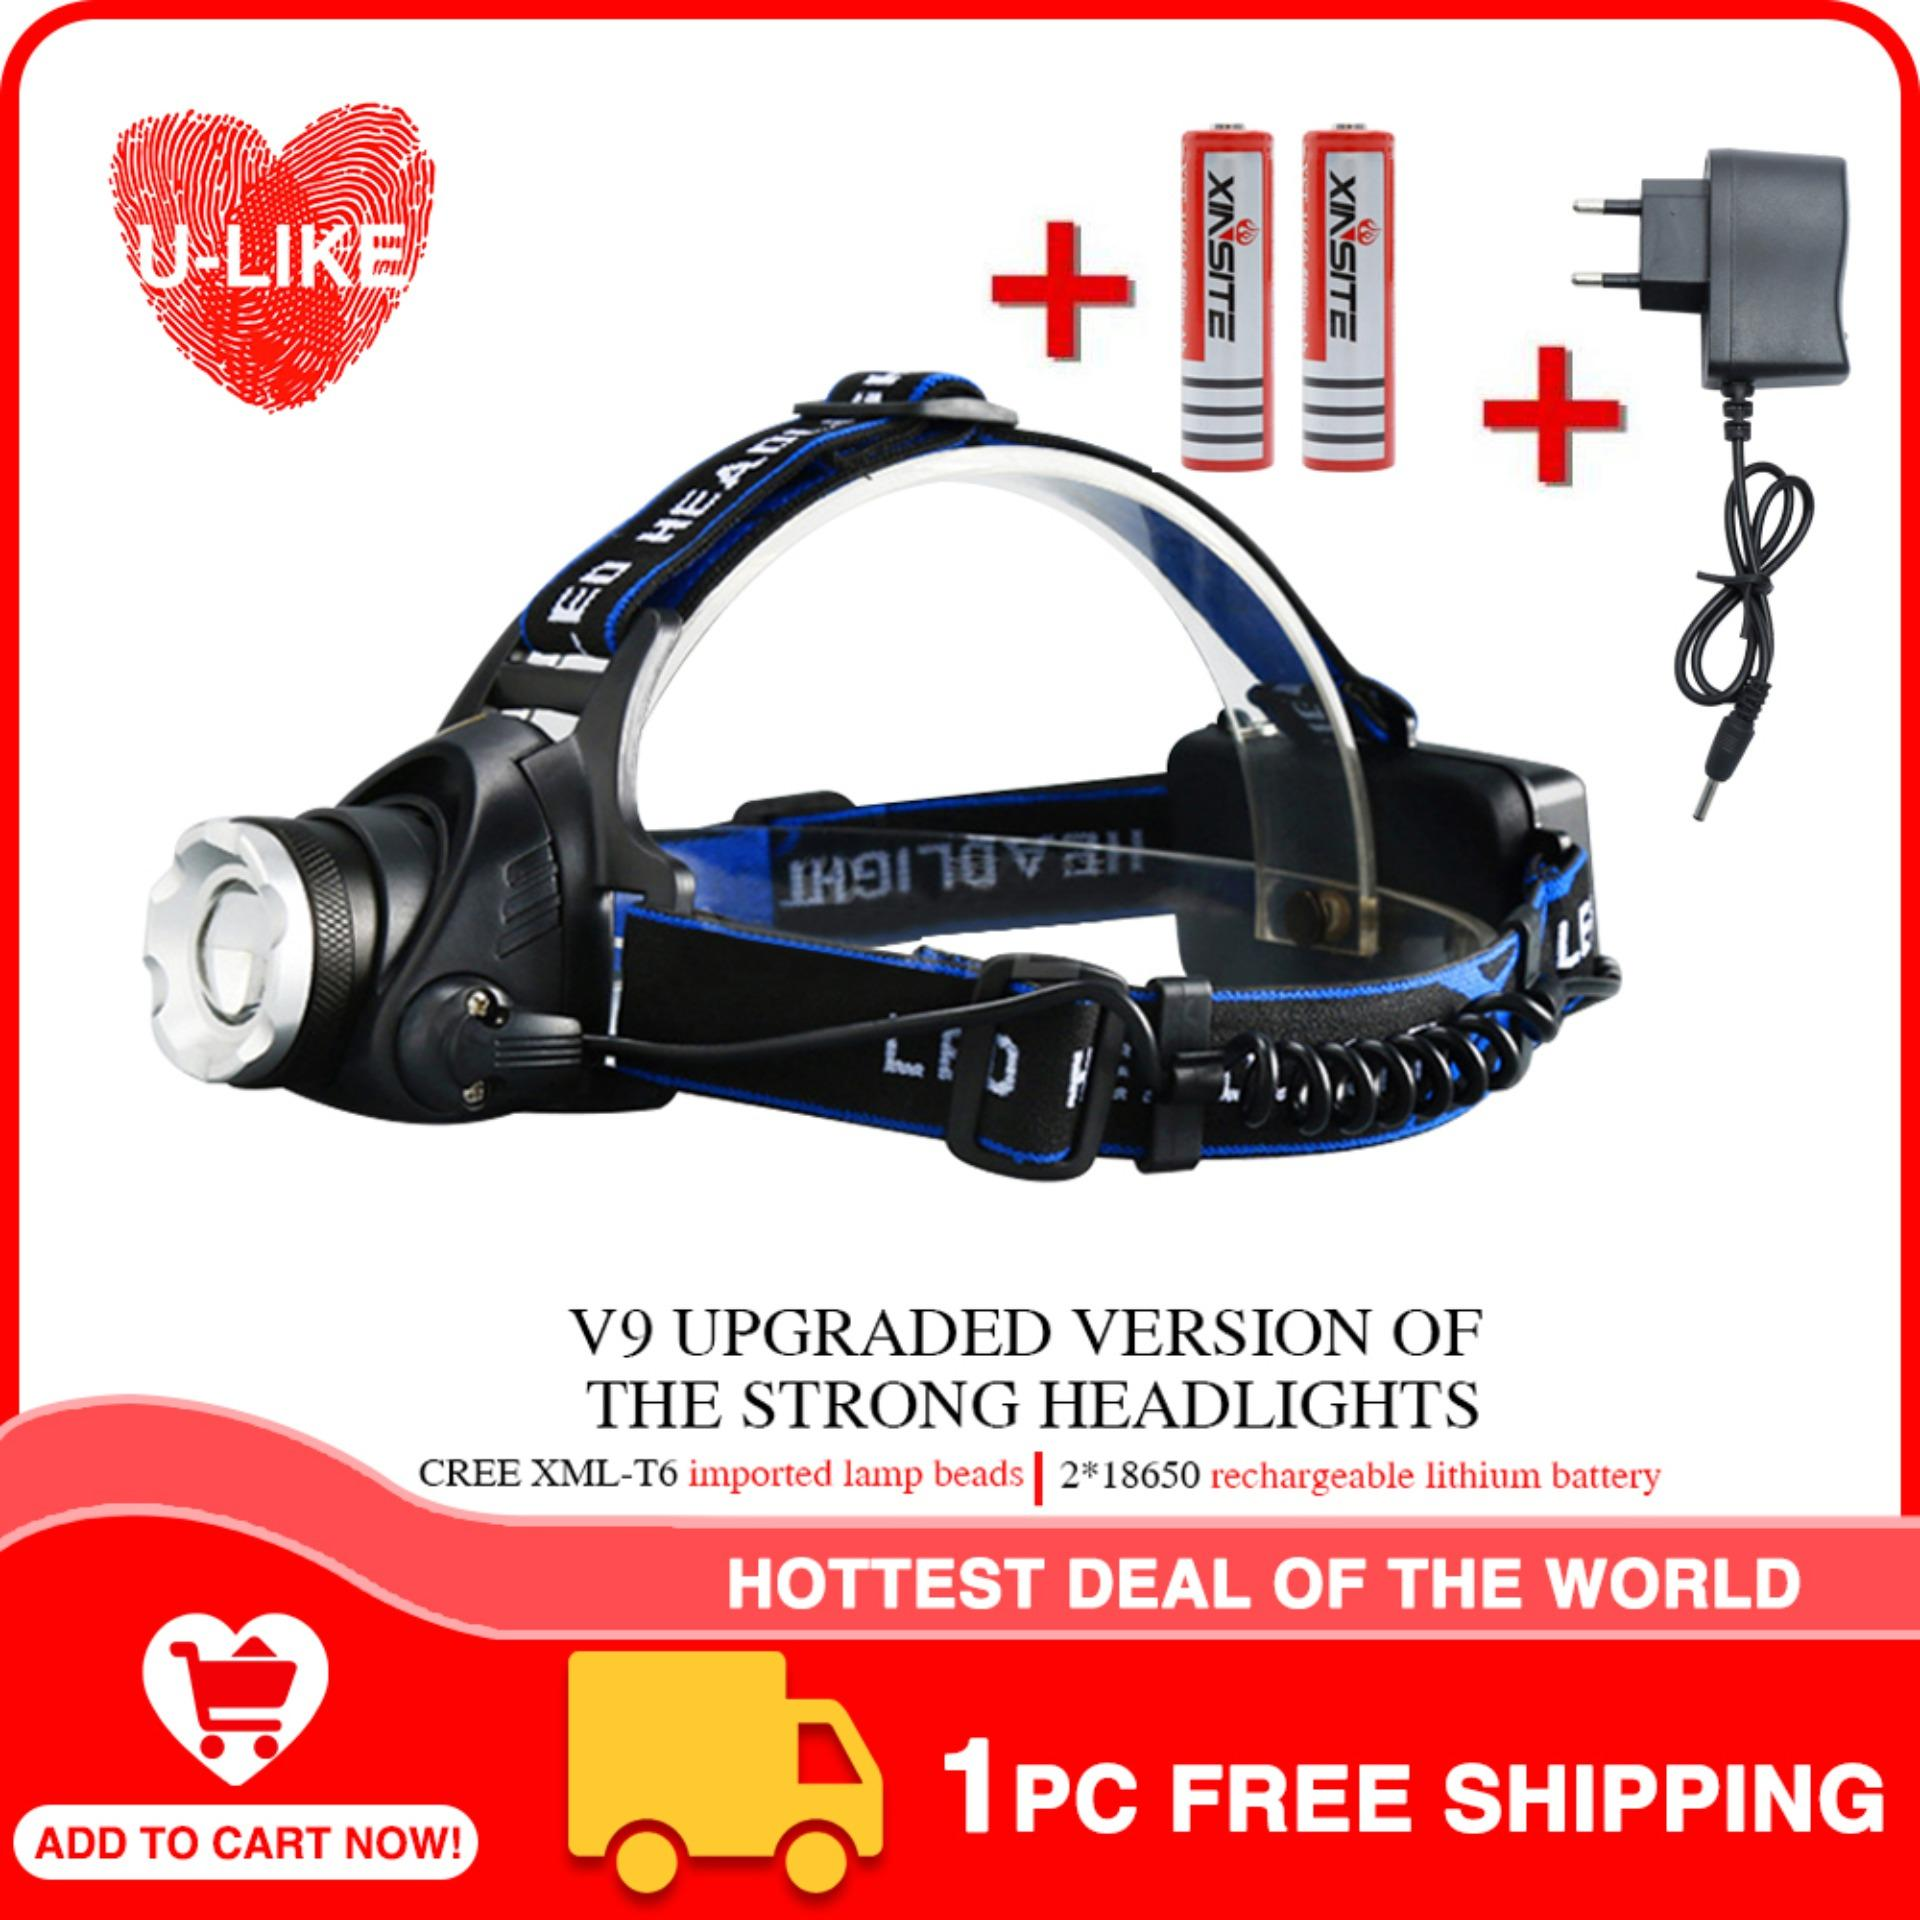 dd8fe3a3bdbd 【Free Shipping】U-like Outdoor Waterproof LED Telescopic Headlamp  Rechargeable Head lamp Helmet